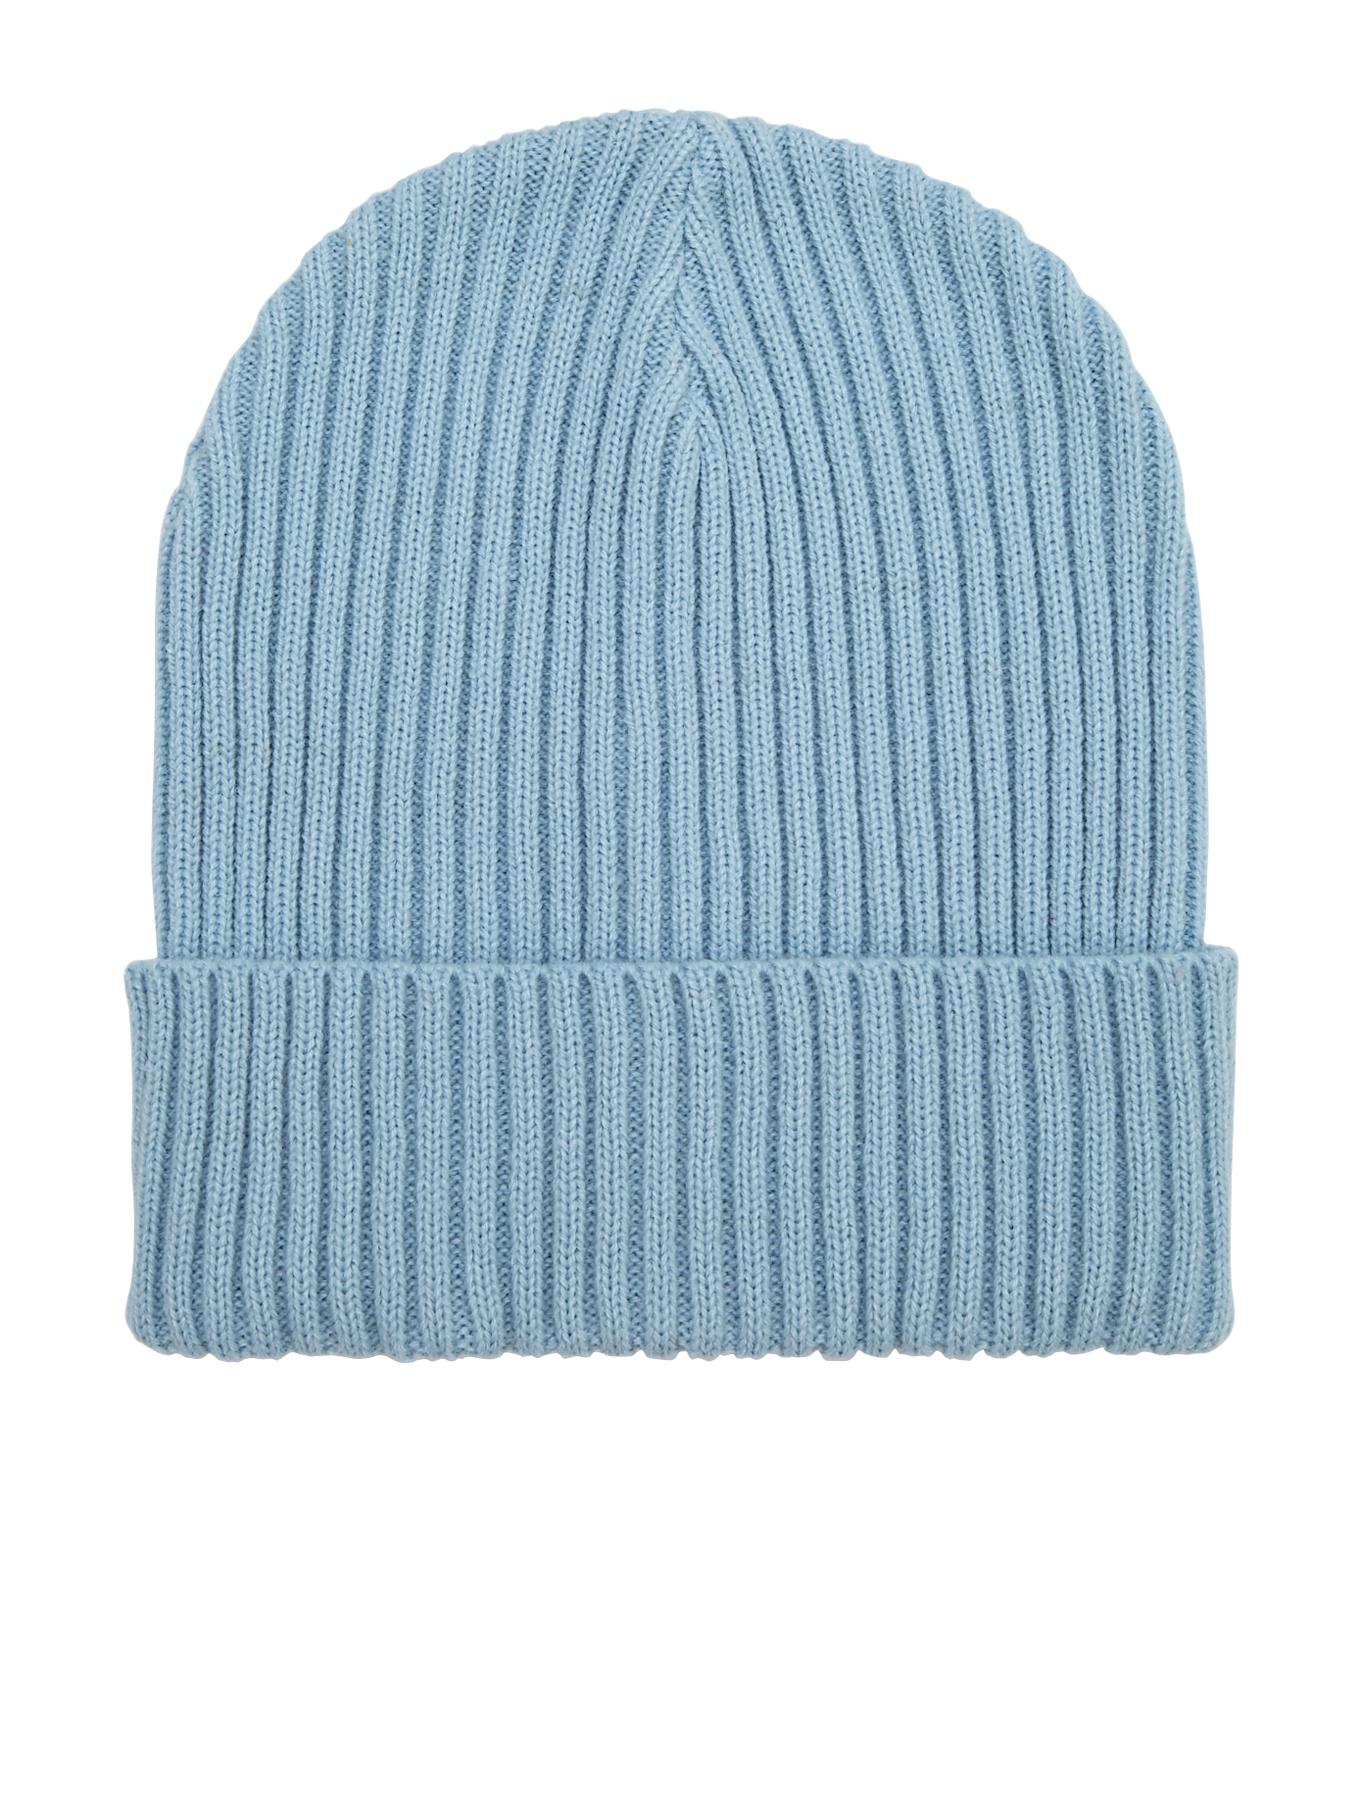 Slouch Beanie Hat, Pink,Blue at Littlewoods